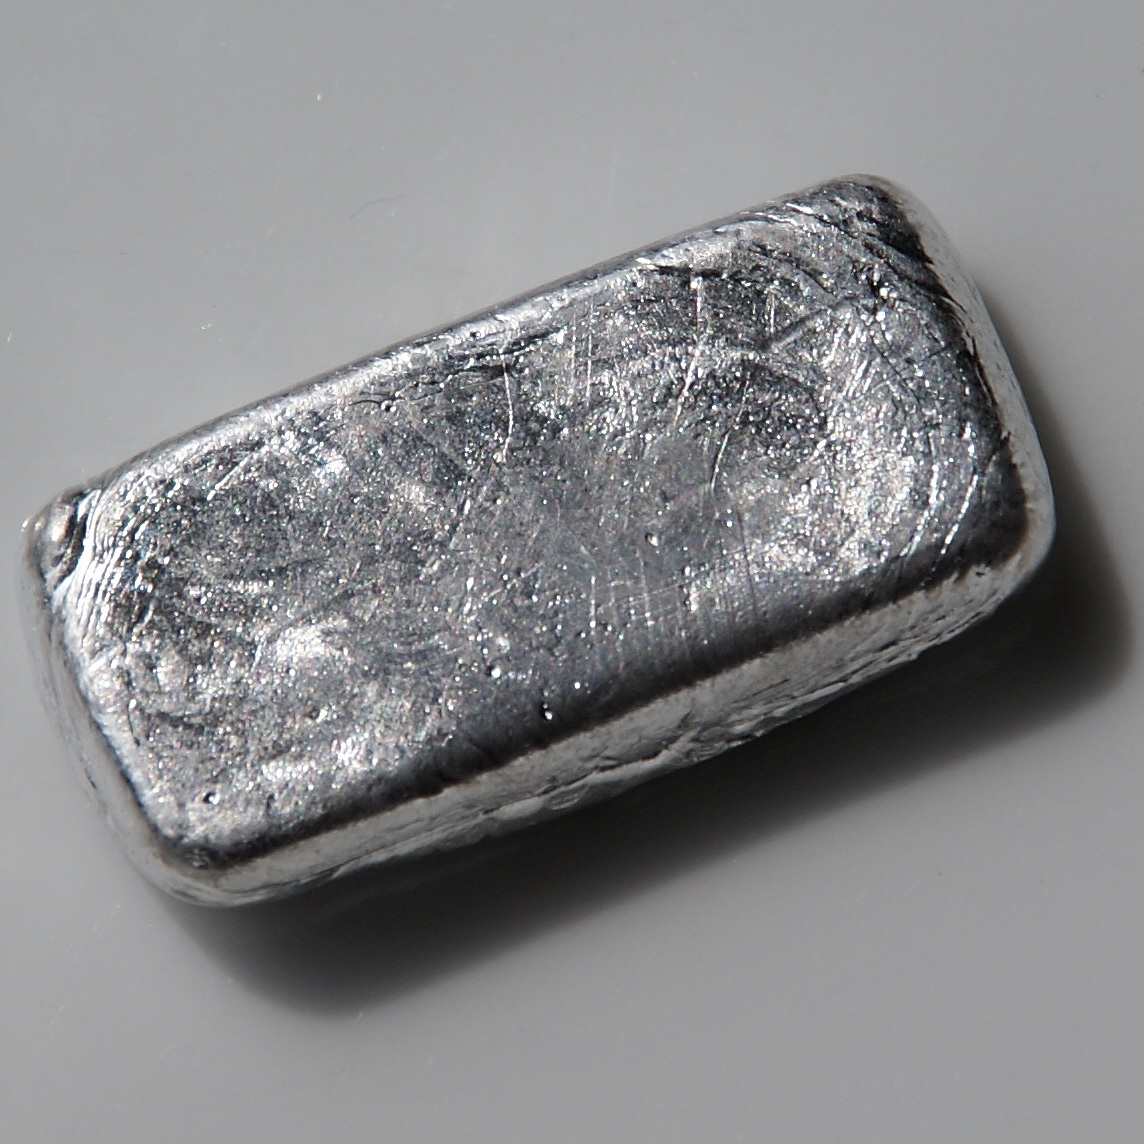 Gallium Selenide Chemical Properties